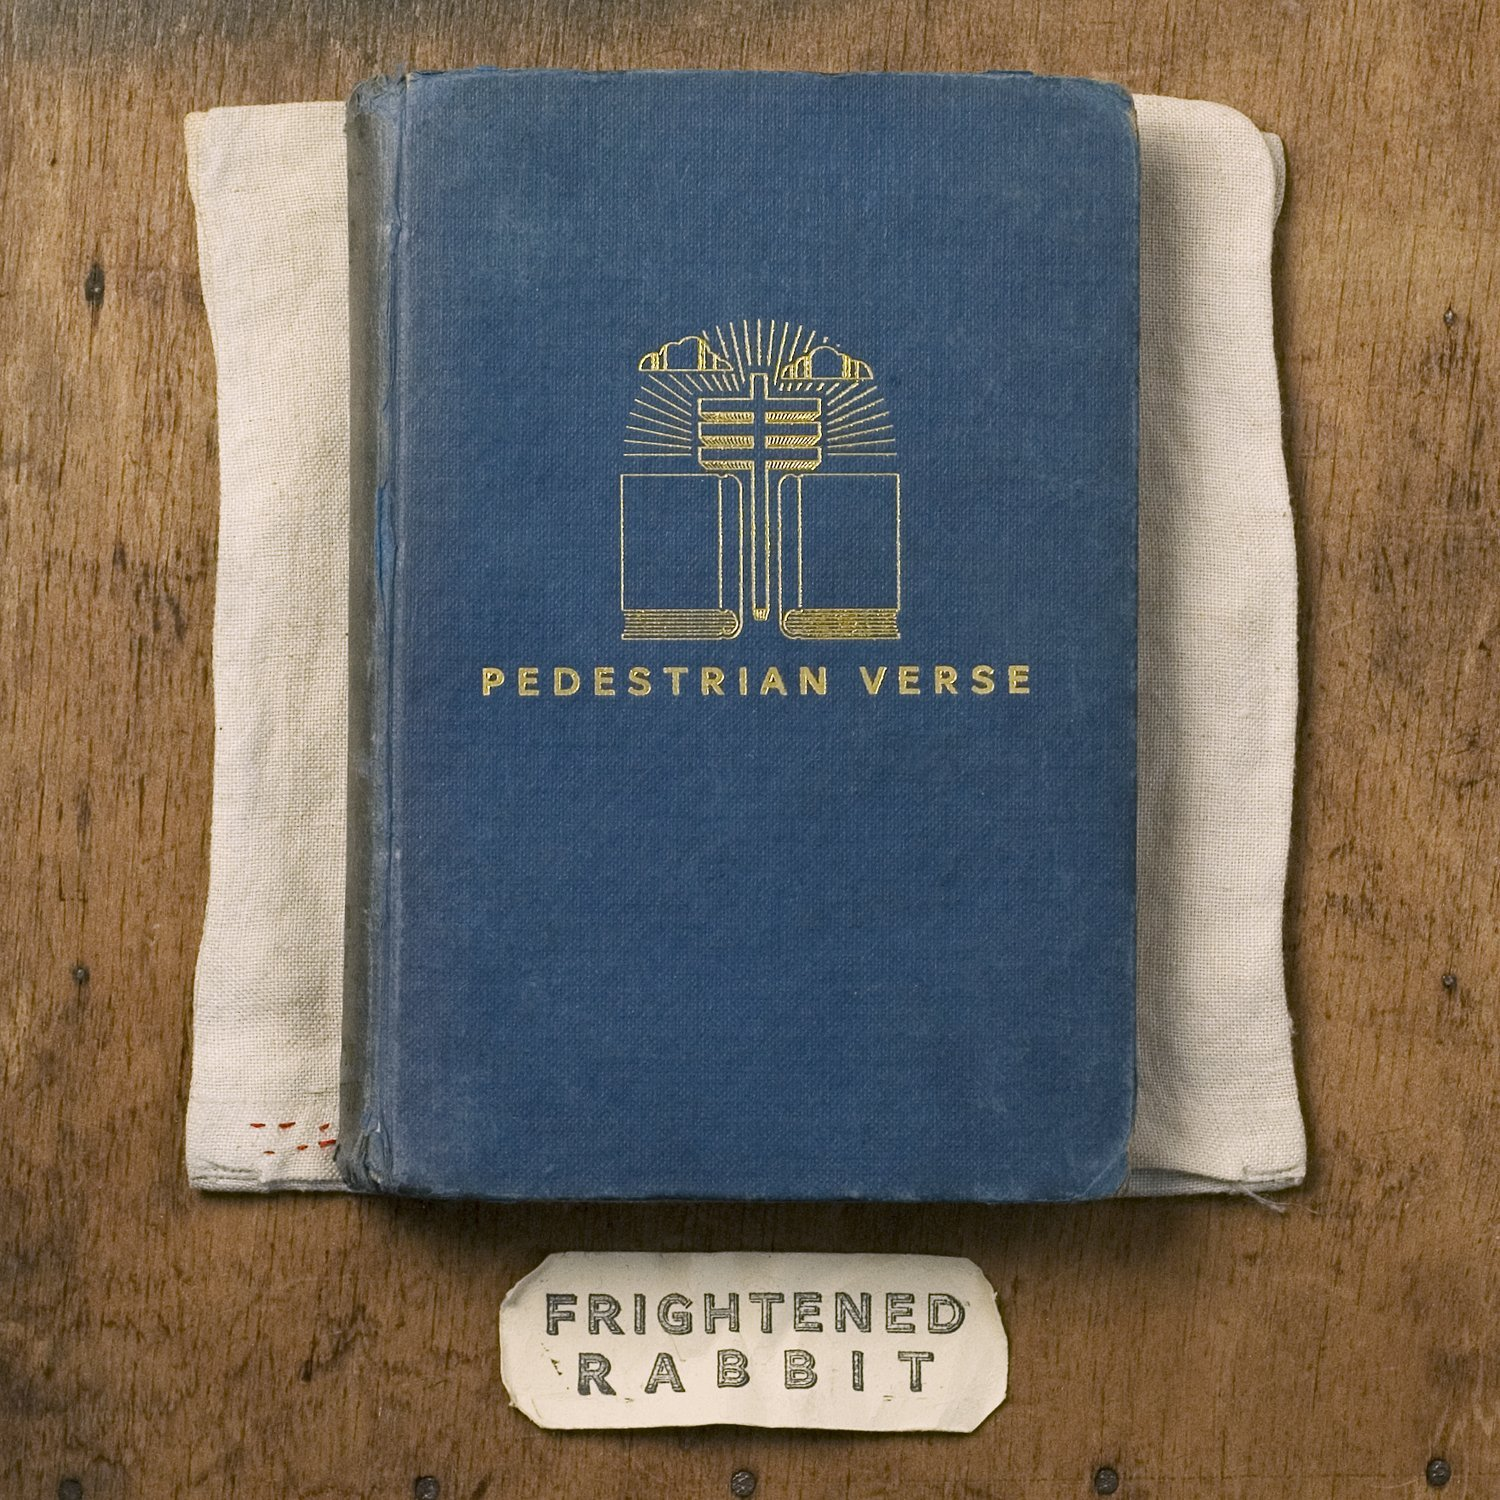 Frightened Rabbit – Pedestrian Verse